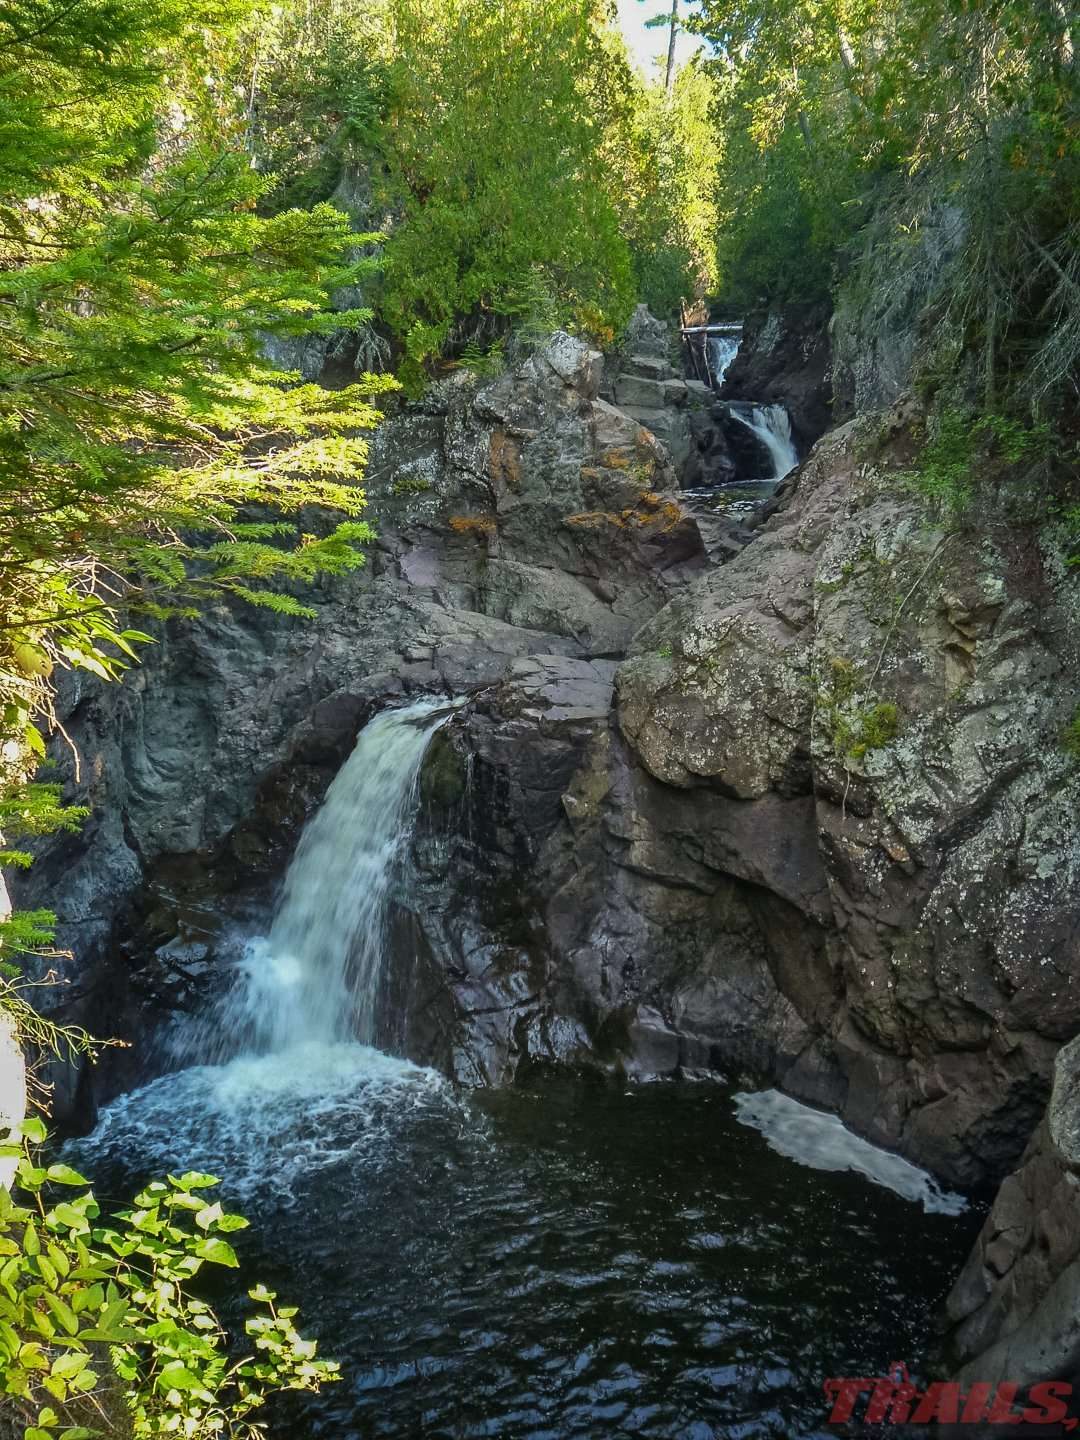 Cascade River State Park is known for its series of Cascading waterfalls